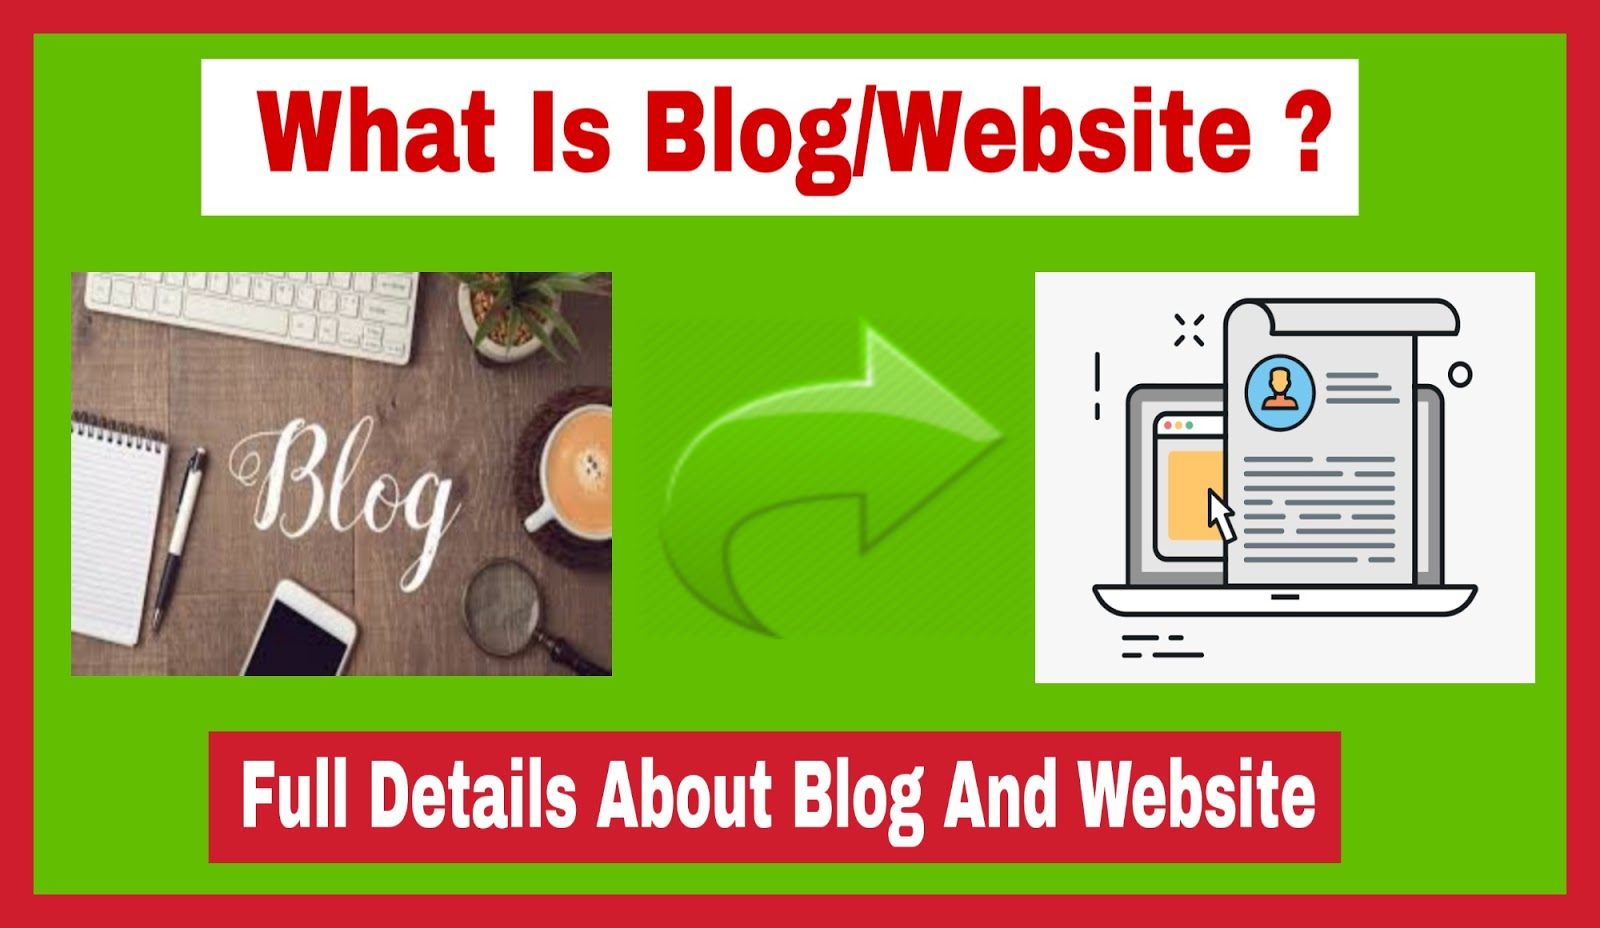 What is Blog/Website ?